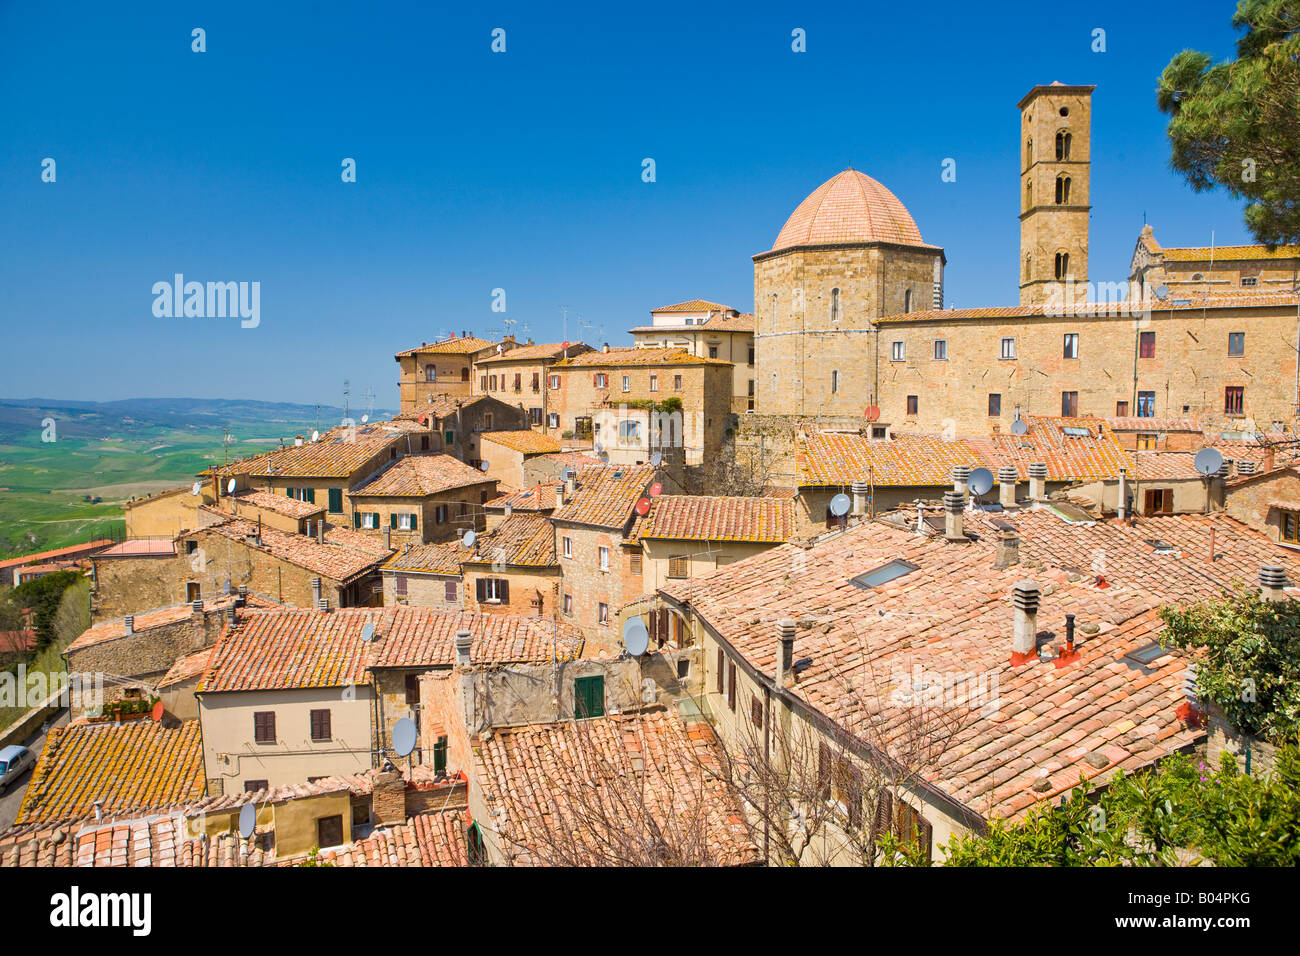 View over the rooftops of Volterra, Province of Pisa, Region of Tuscany, Italy, Europe. - Stock Image